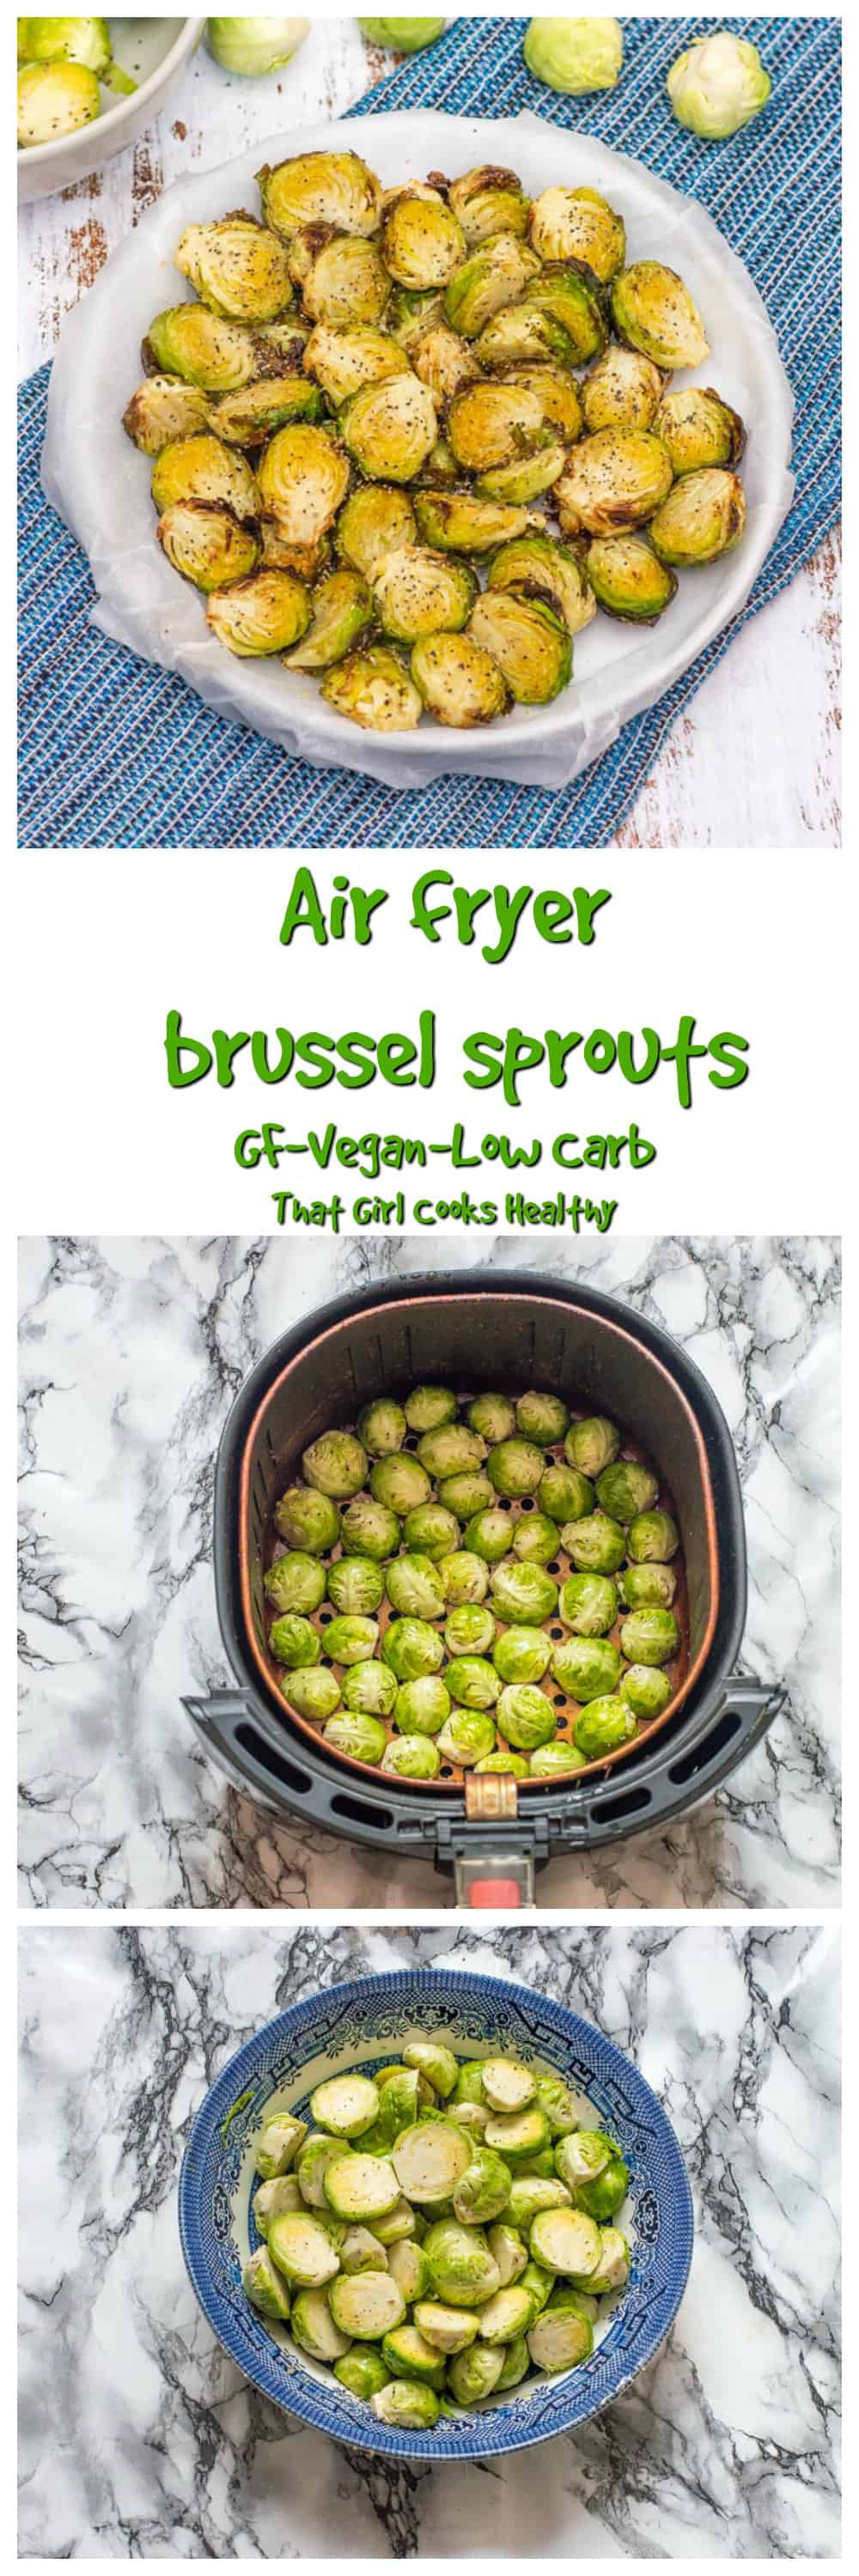 These delicious air fryer brussel sprouts make the perfect low carb seasonal side dish or healthy appetizer